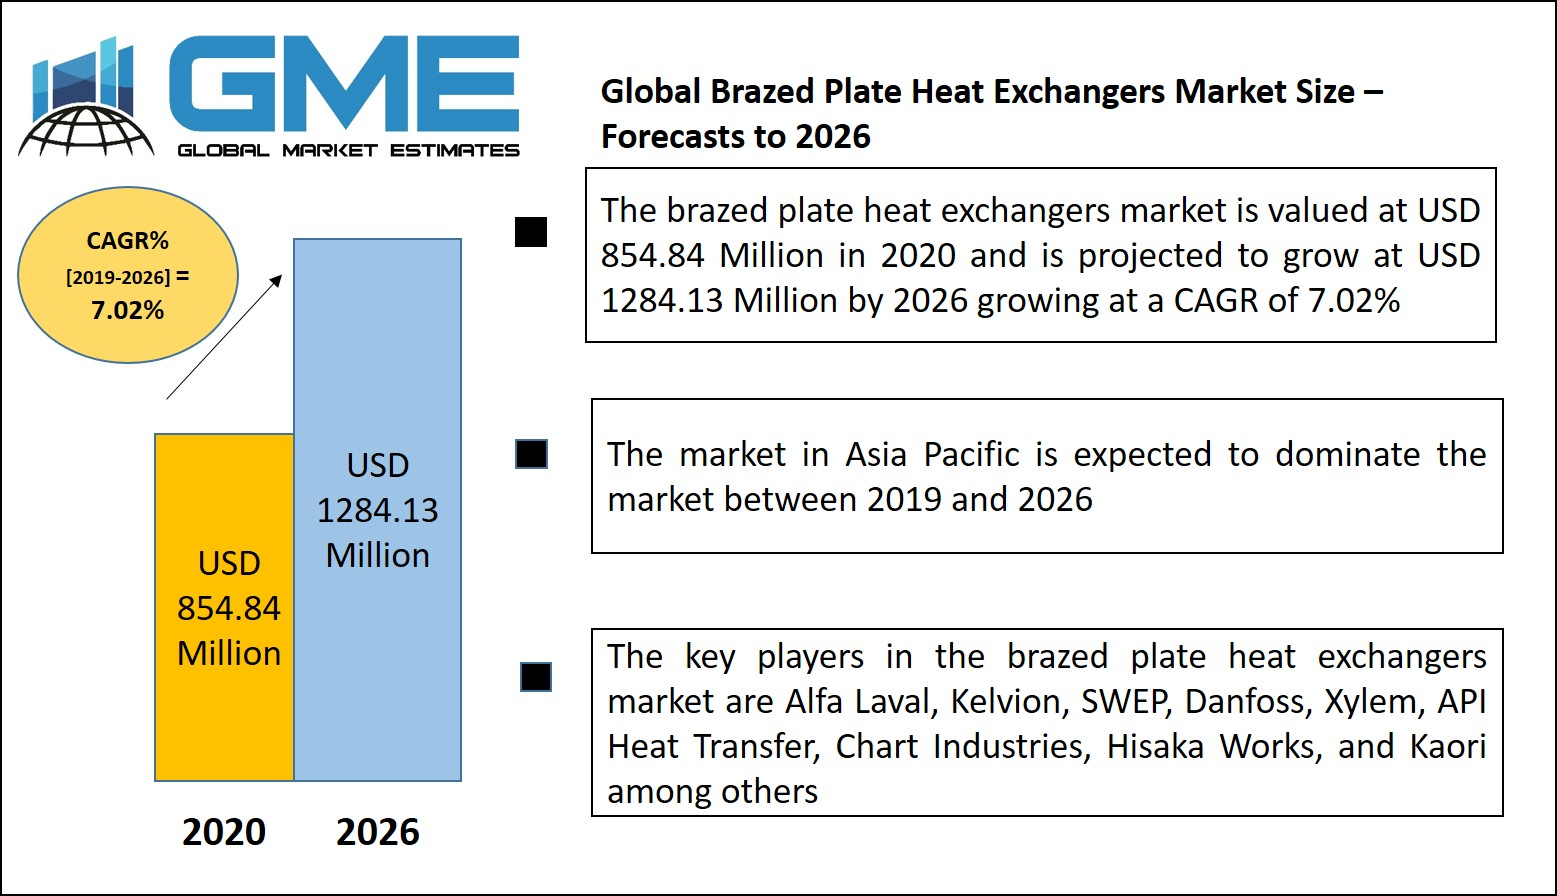 Global Brazed Plate Heat Exchangers Market